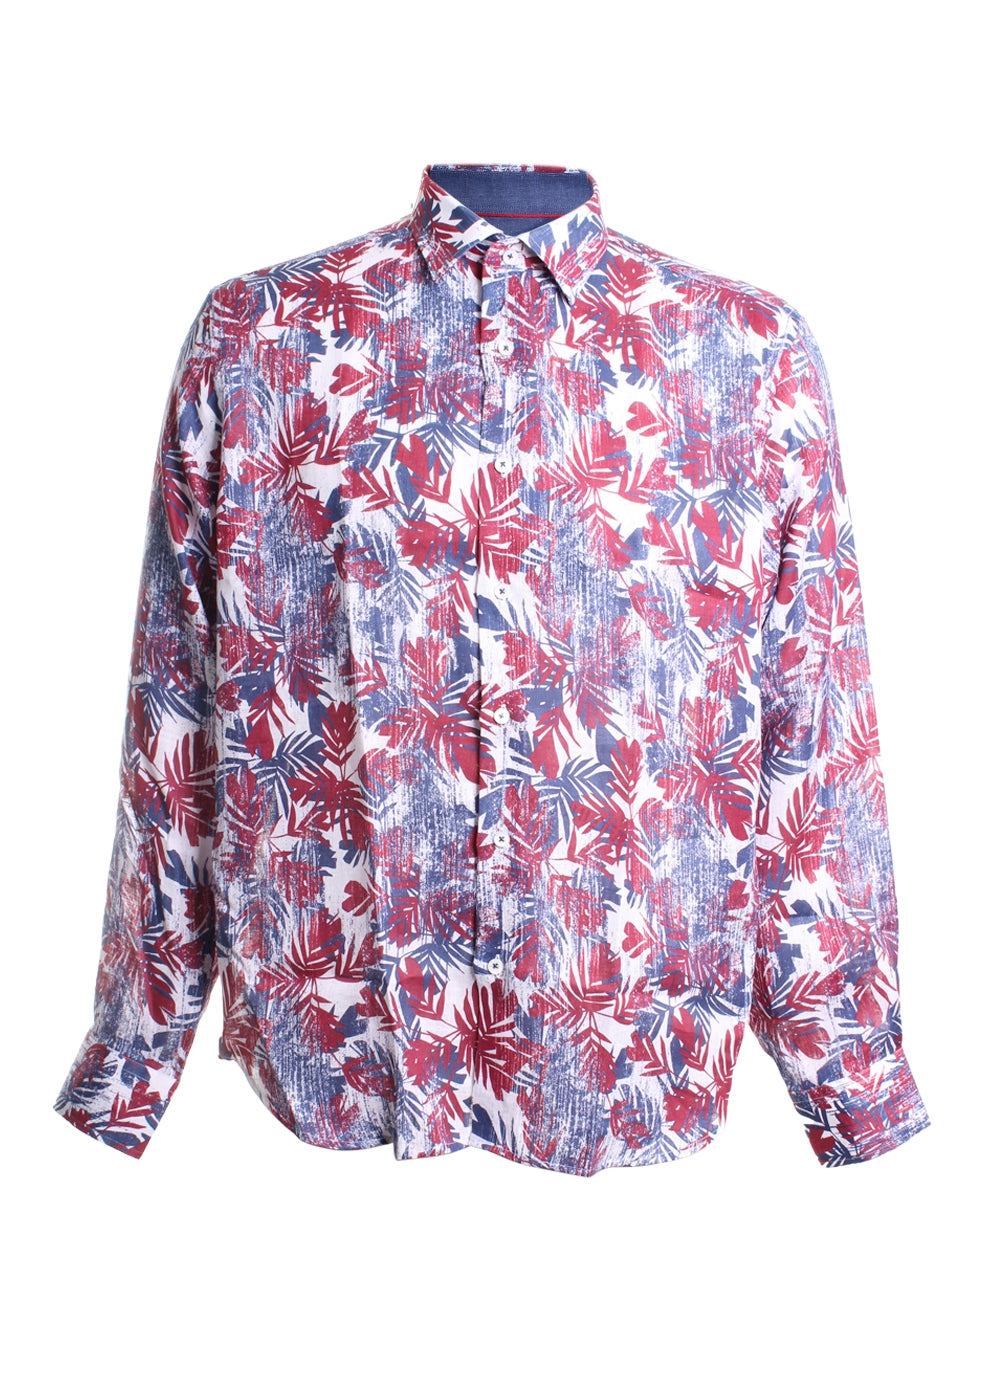 Linen Floral Printed Button Down Shirt